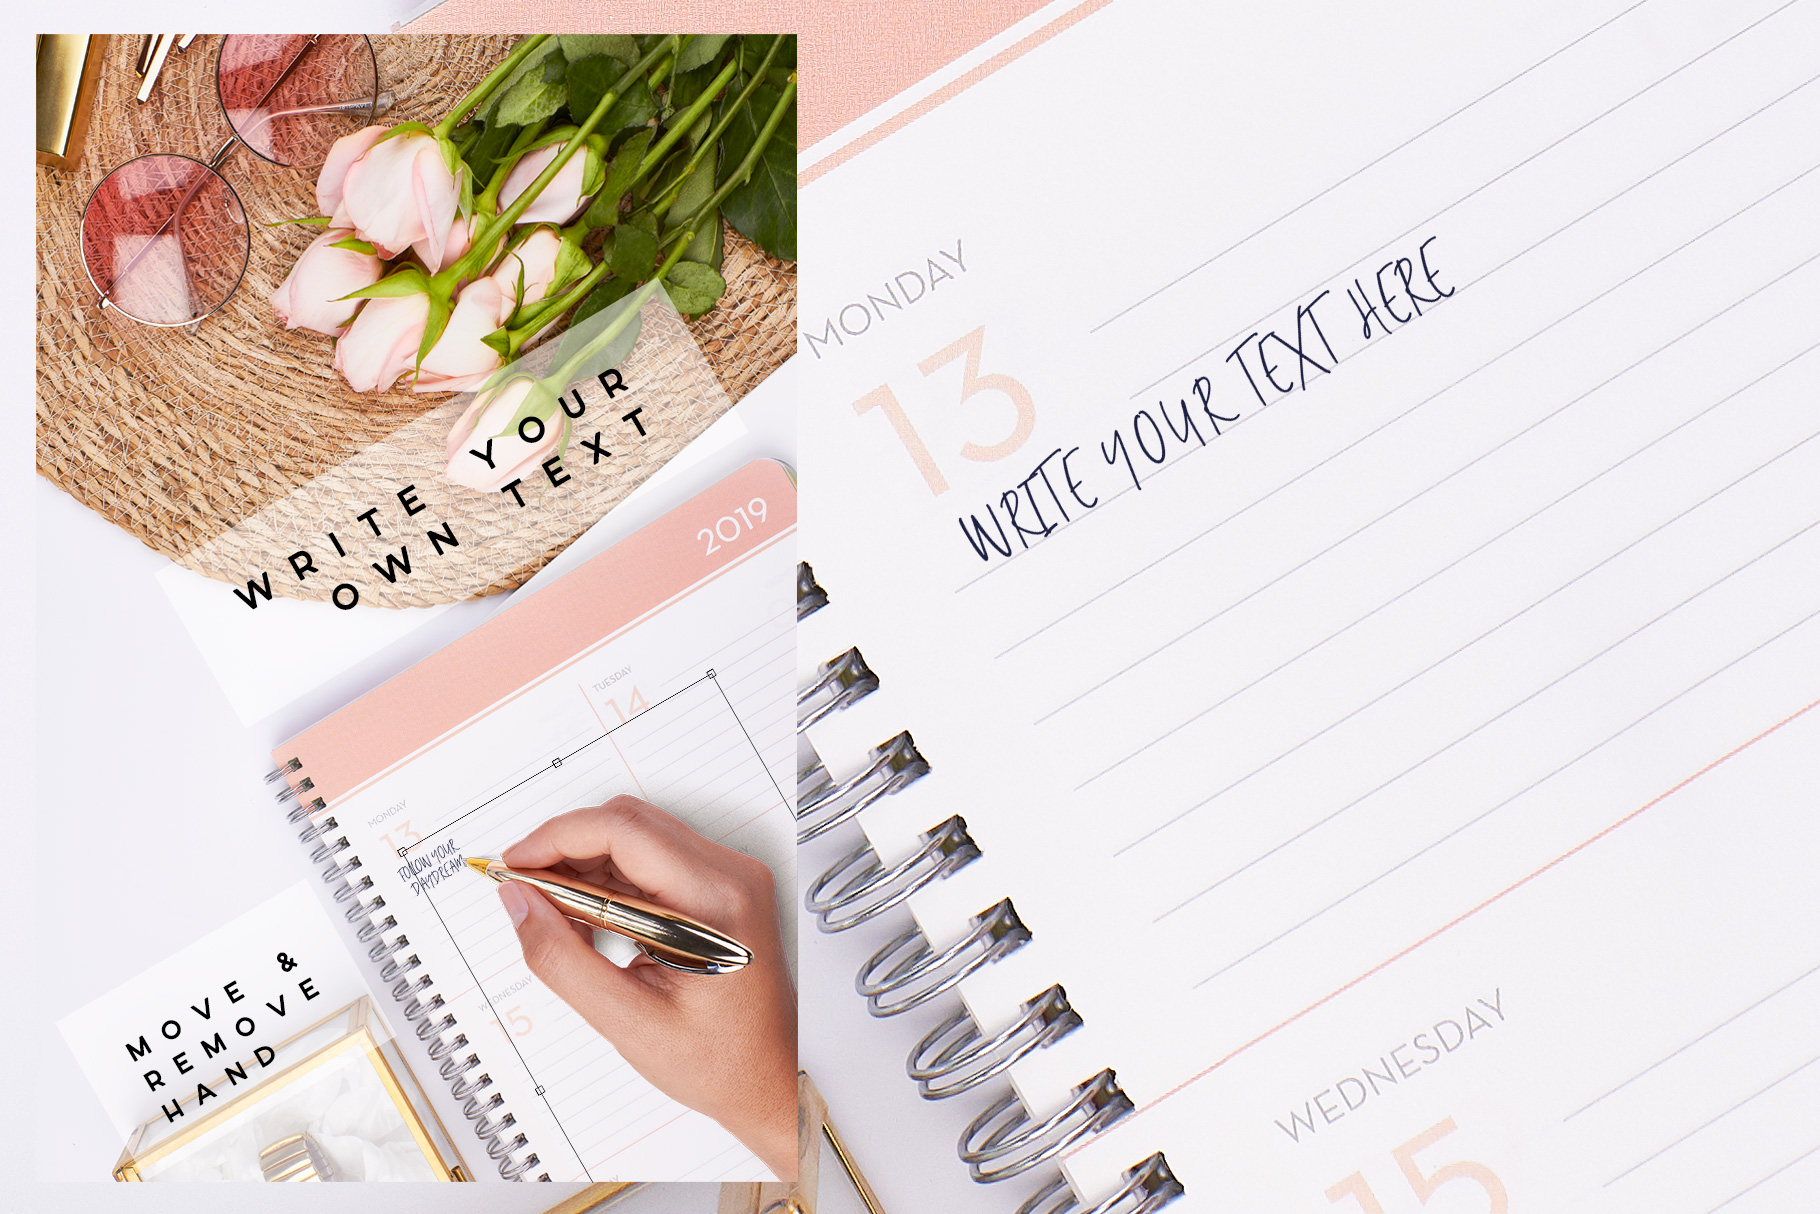 06-pink-blogger-summer-stock-images-bundle-sunglas-mockup-ipad-iphone-hand-planner